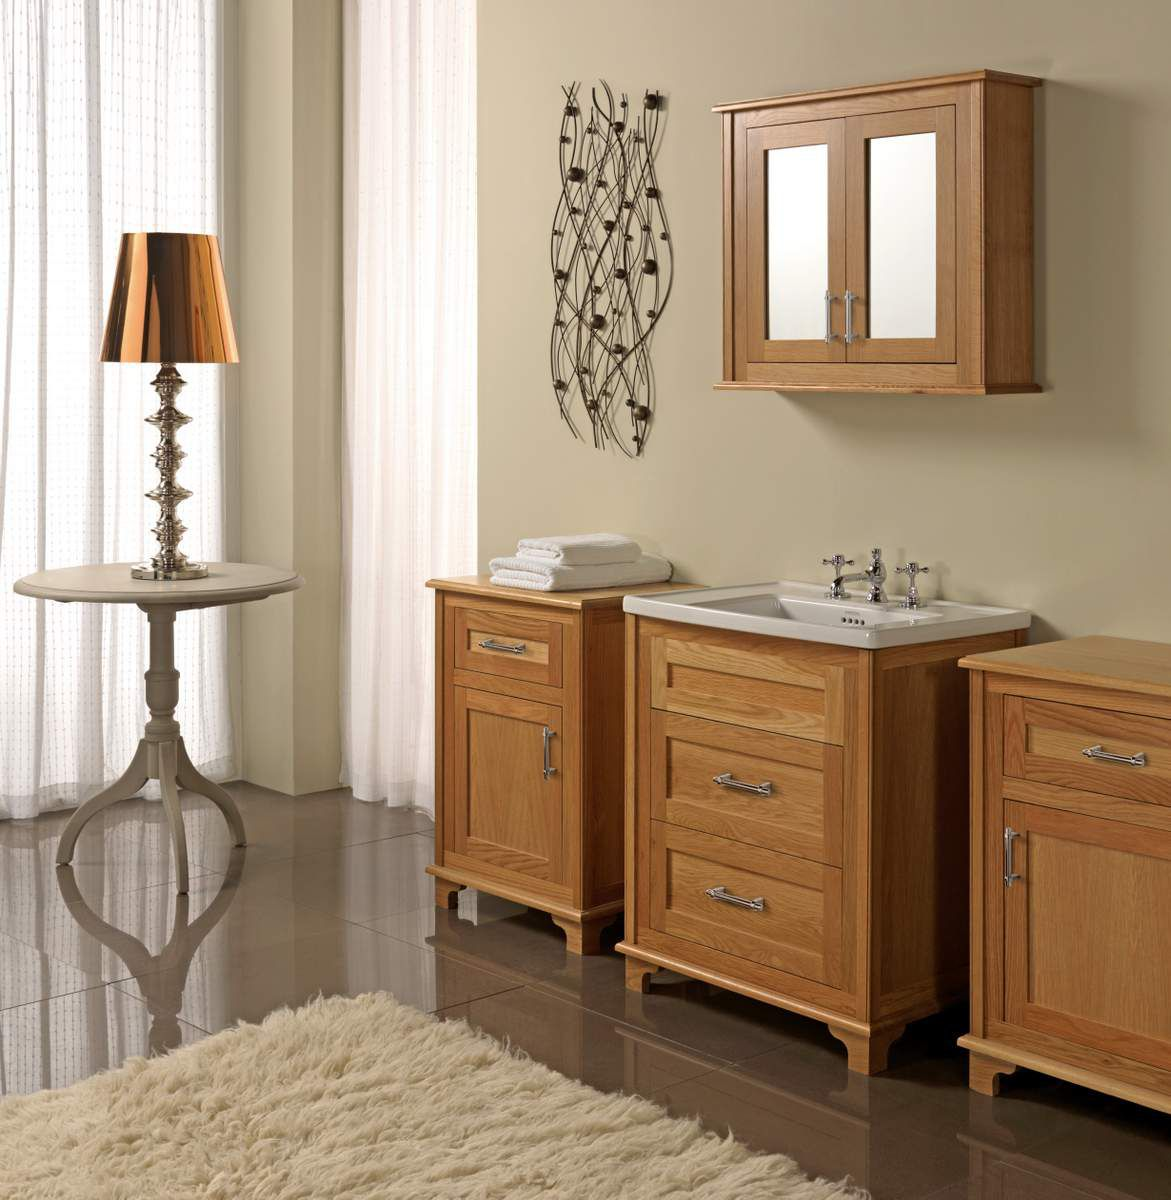 Cream Bathroom Vanity Units Shaker Cabi Onsingularity